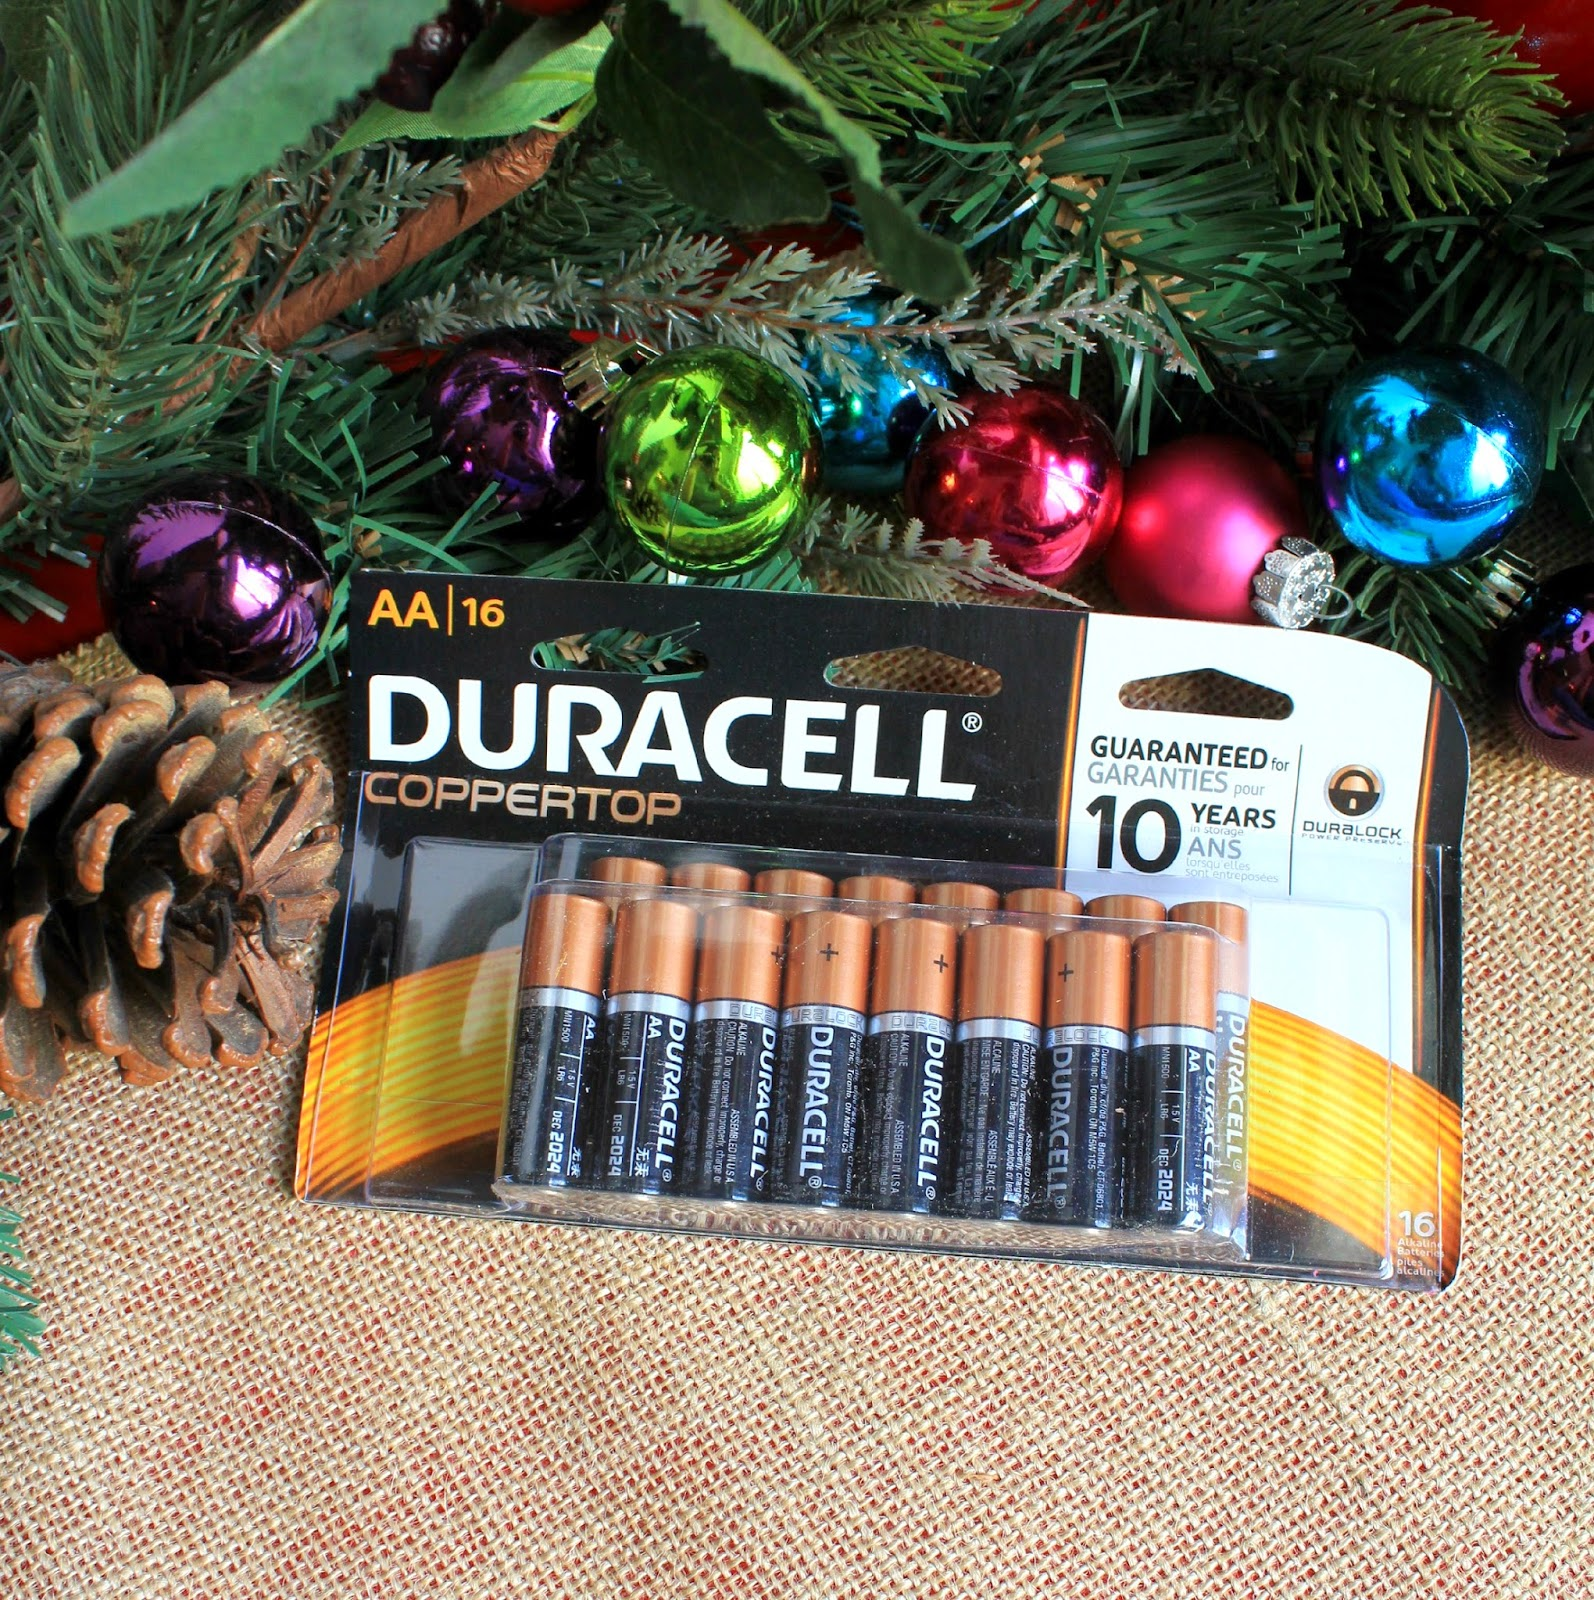 Don't forget the batteries! Power the holidays with Duracell! #PowerTheHolidays #sponsored